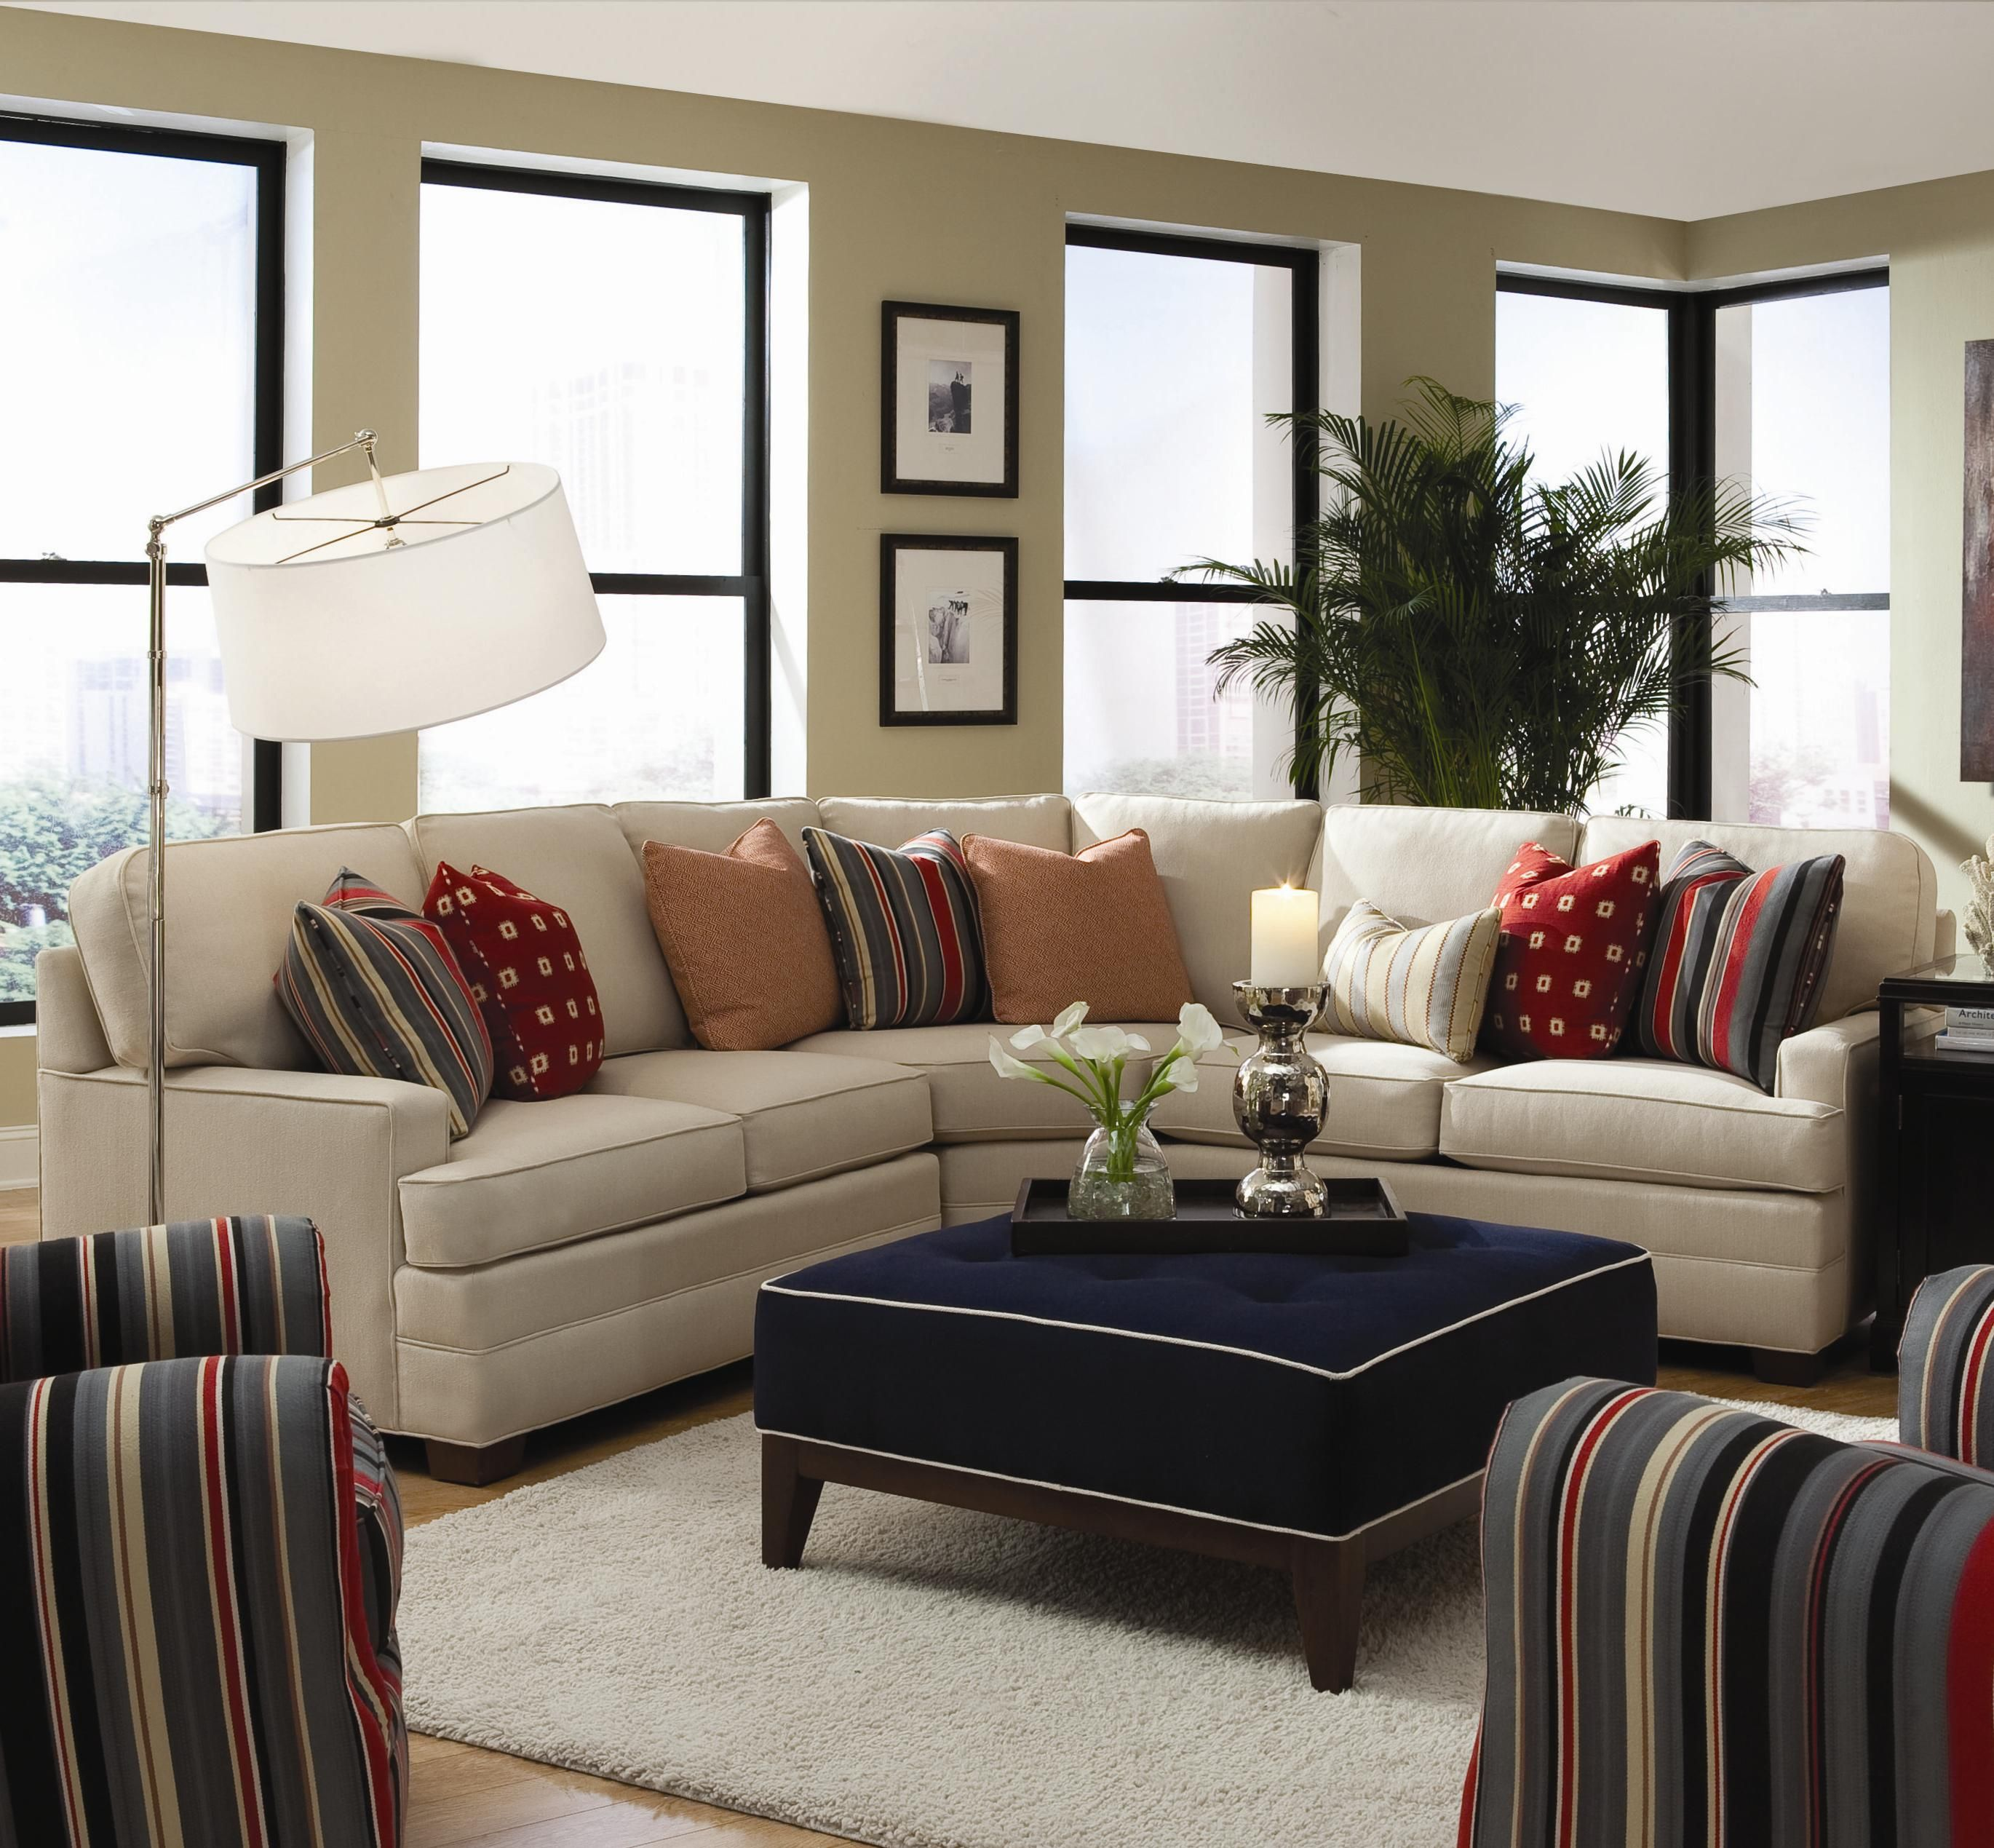 Awesome Dellinger 3 Piece Sectional Sofa By Huntington House